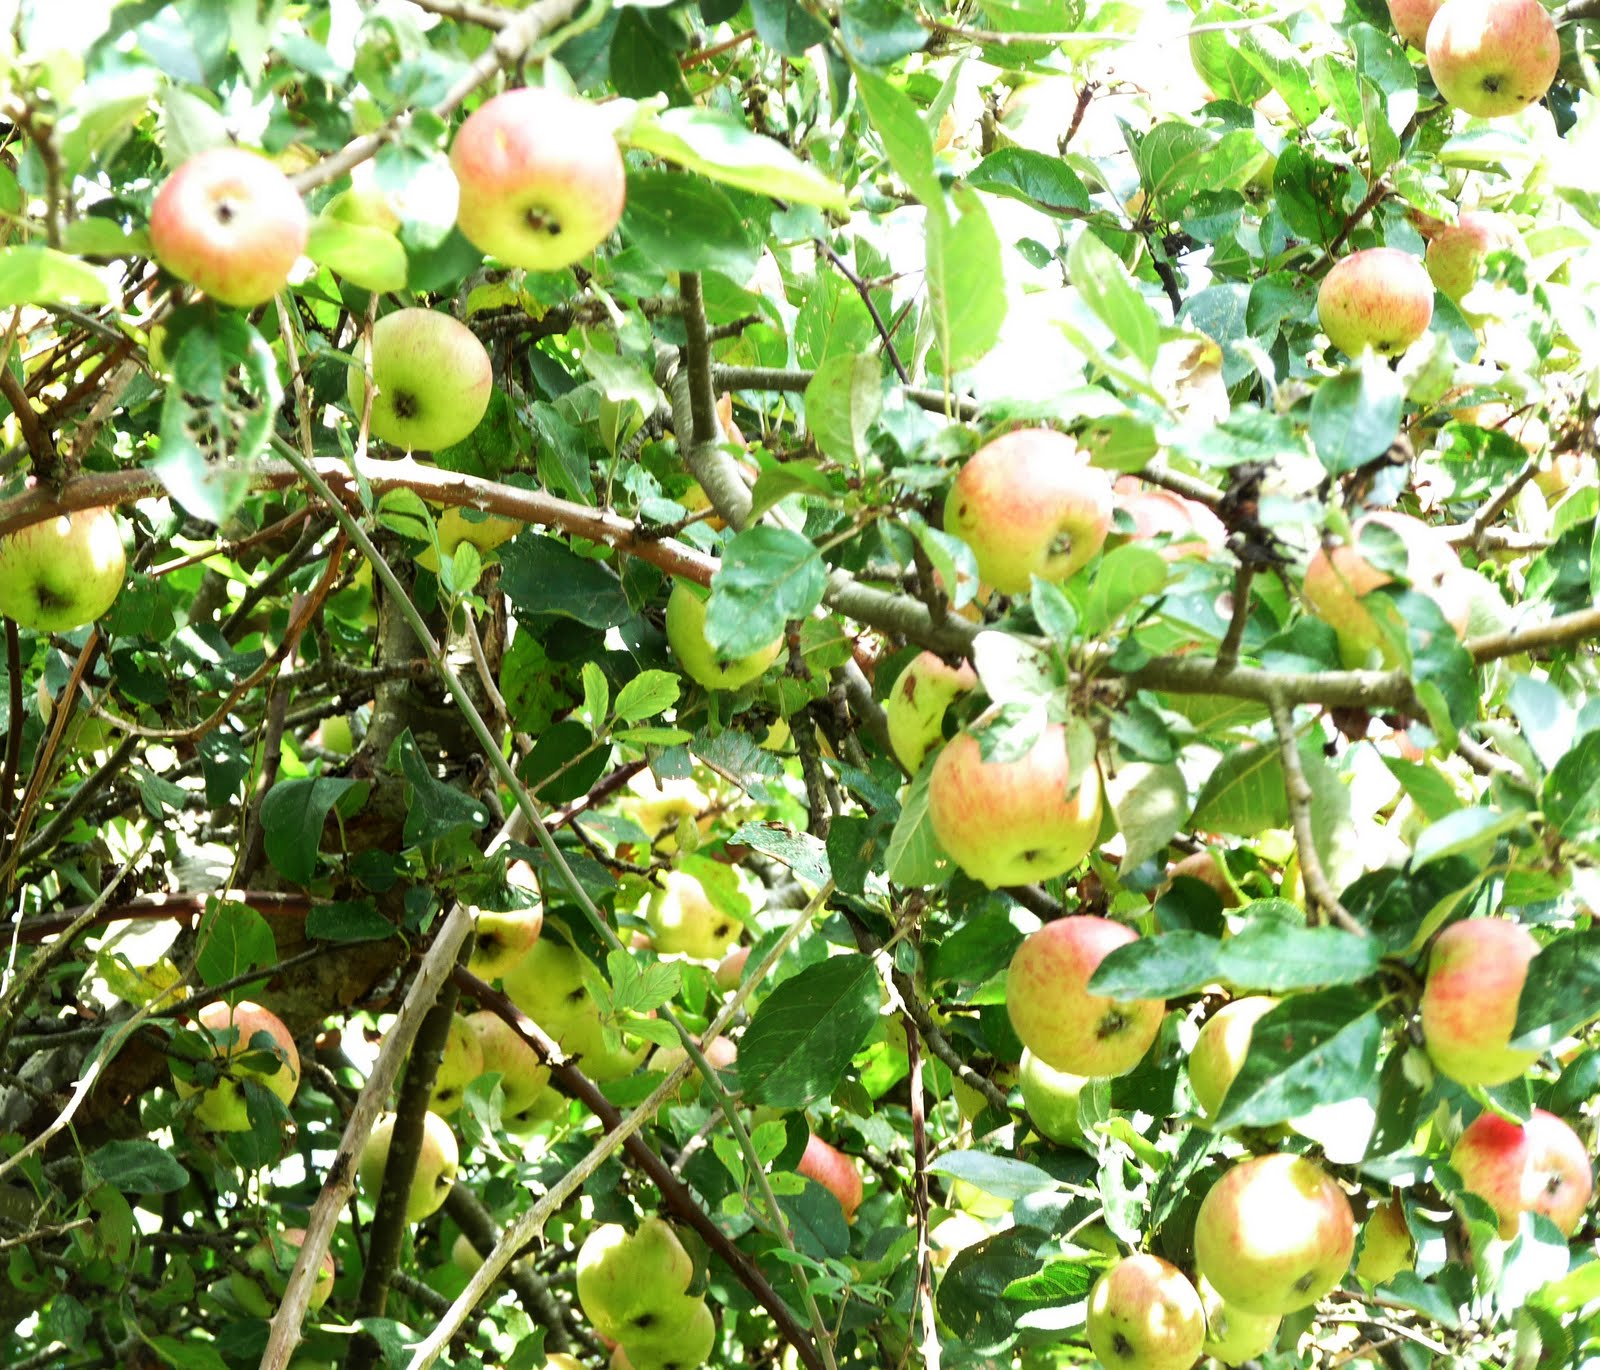 Tolpuddle Martyr Rare Apple Varieties Growing In The Fields Of France